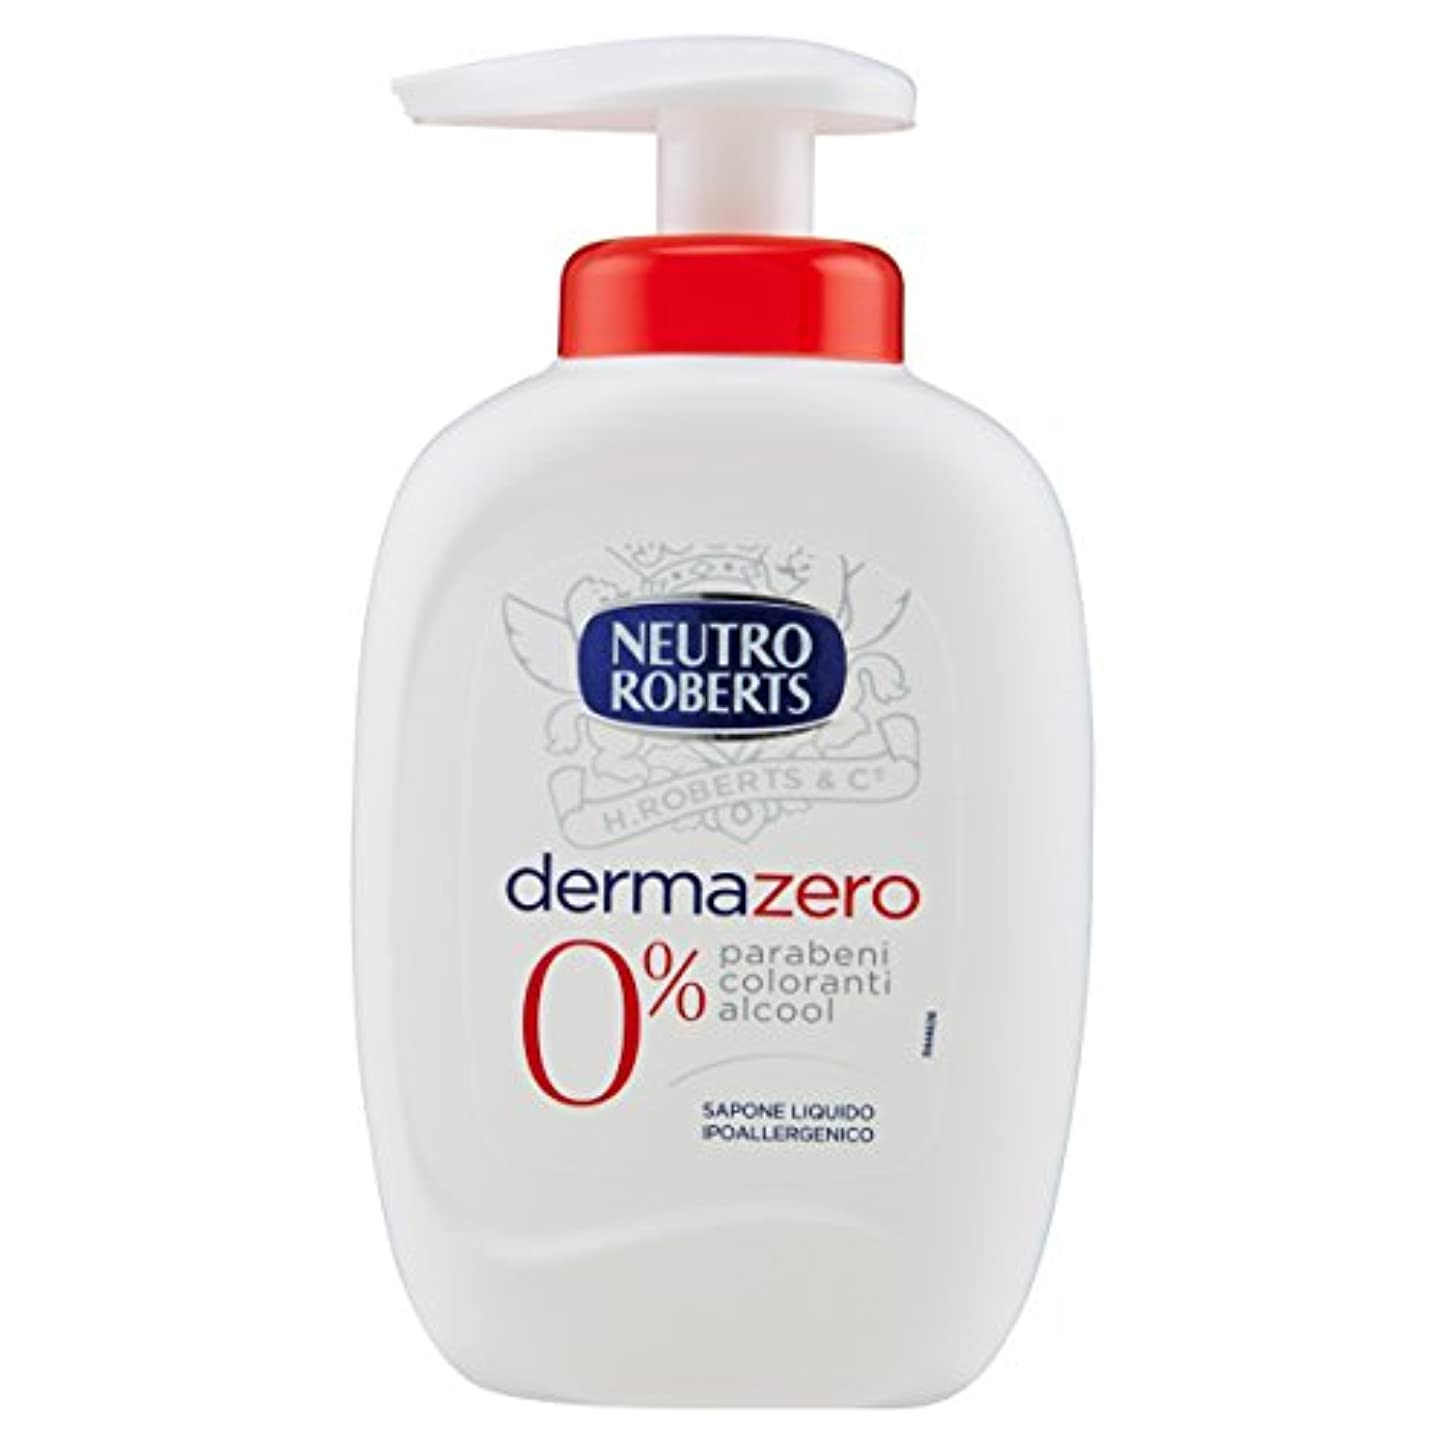 オゾンダース急降下Neutroroberts dermazero liquid soap